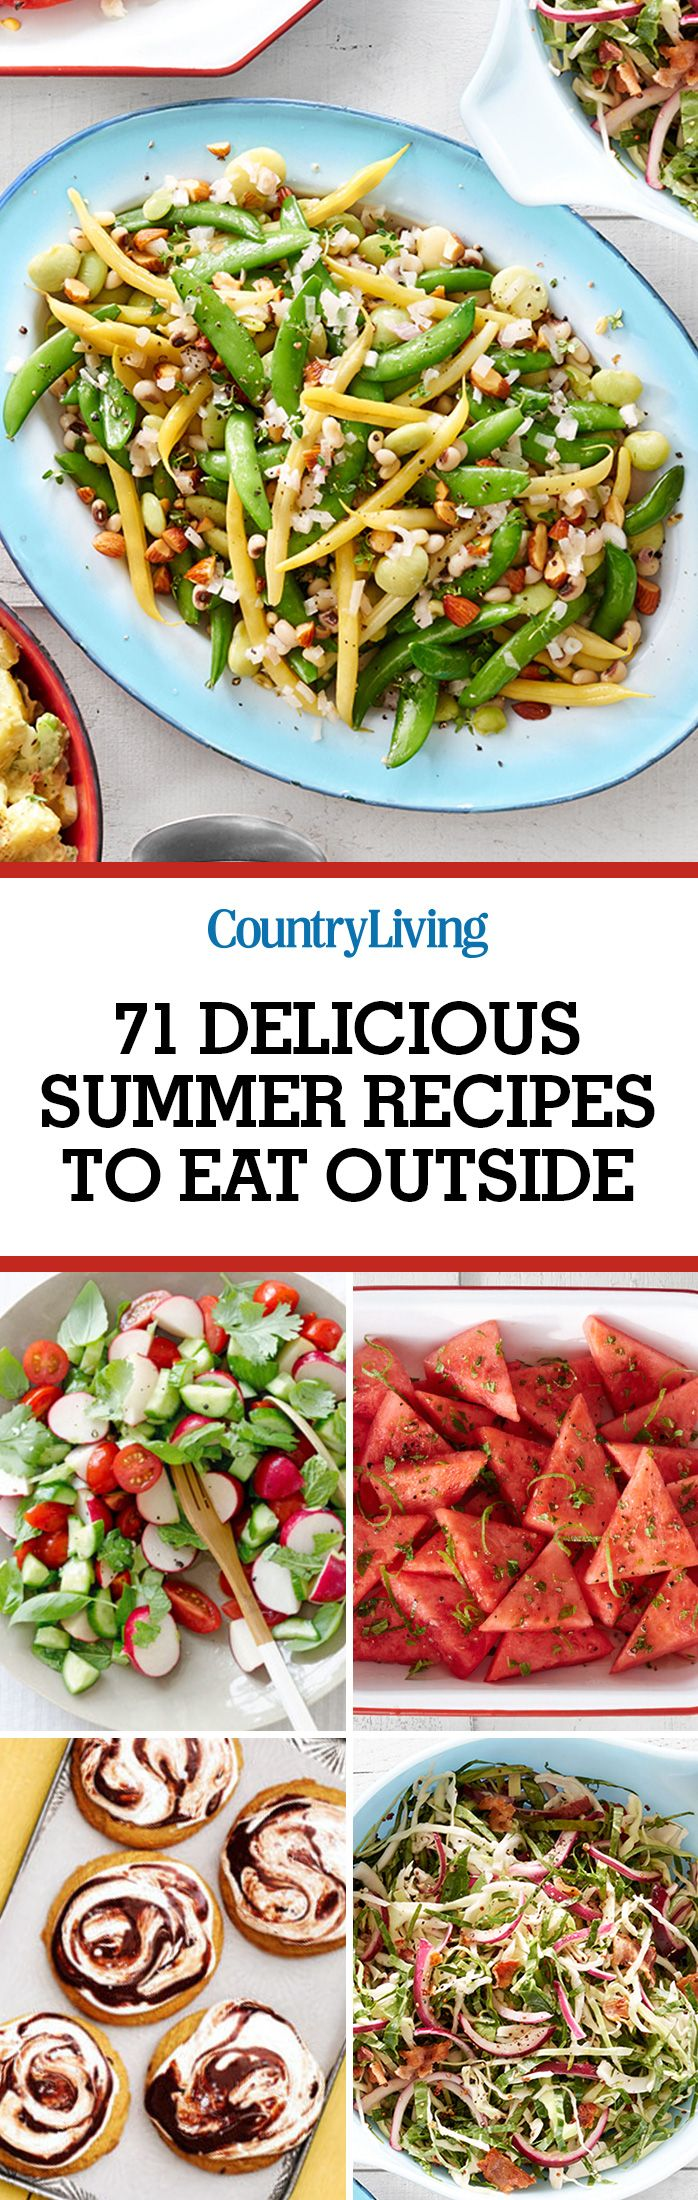 85 picnic food ideas quick healthy jam jar salads chicken 90 summer picnic recipes easy food ideas for a forumfinder Image collections